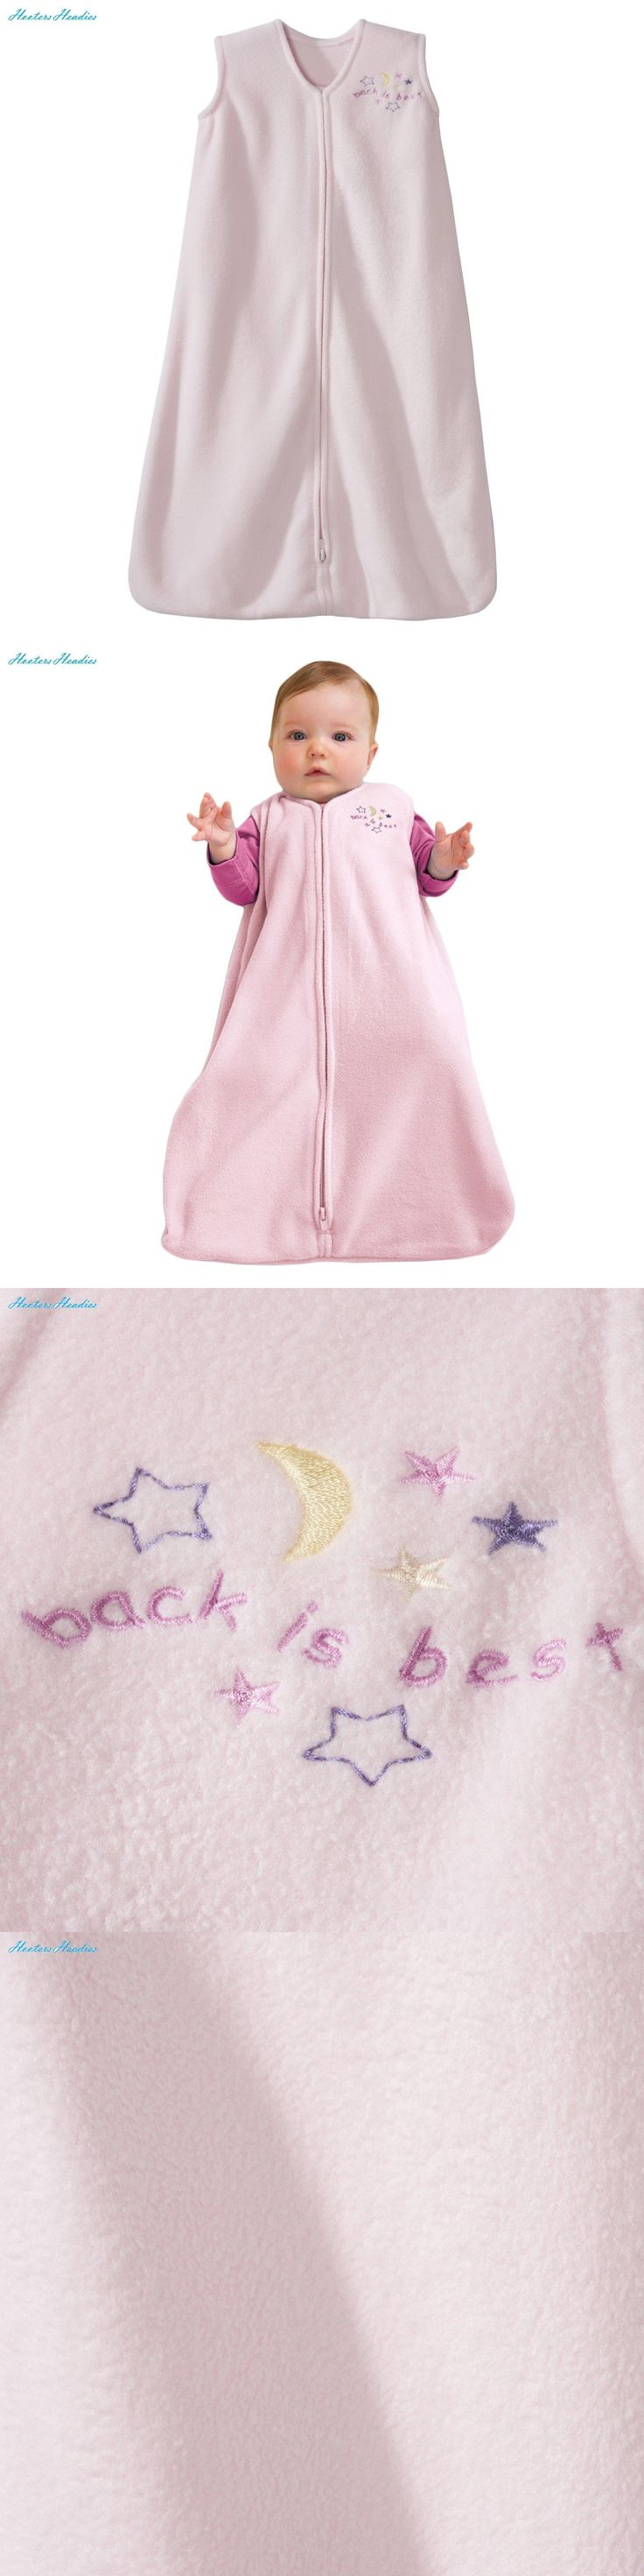 Sleeping Bags and Sleepsacks 100989: Halo Sleepsack Micro-Fleece Wearable Blanket, Soft Pink, Medium -> BUY IT NOW ONLY: $38.05 on eBay!